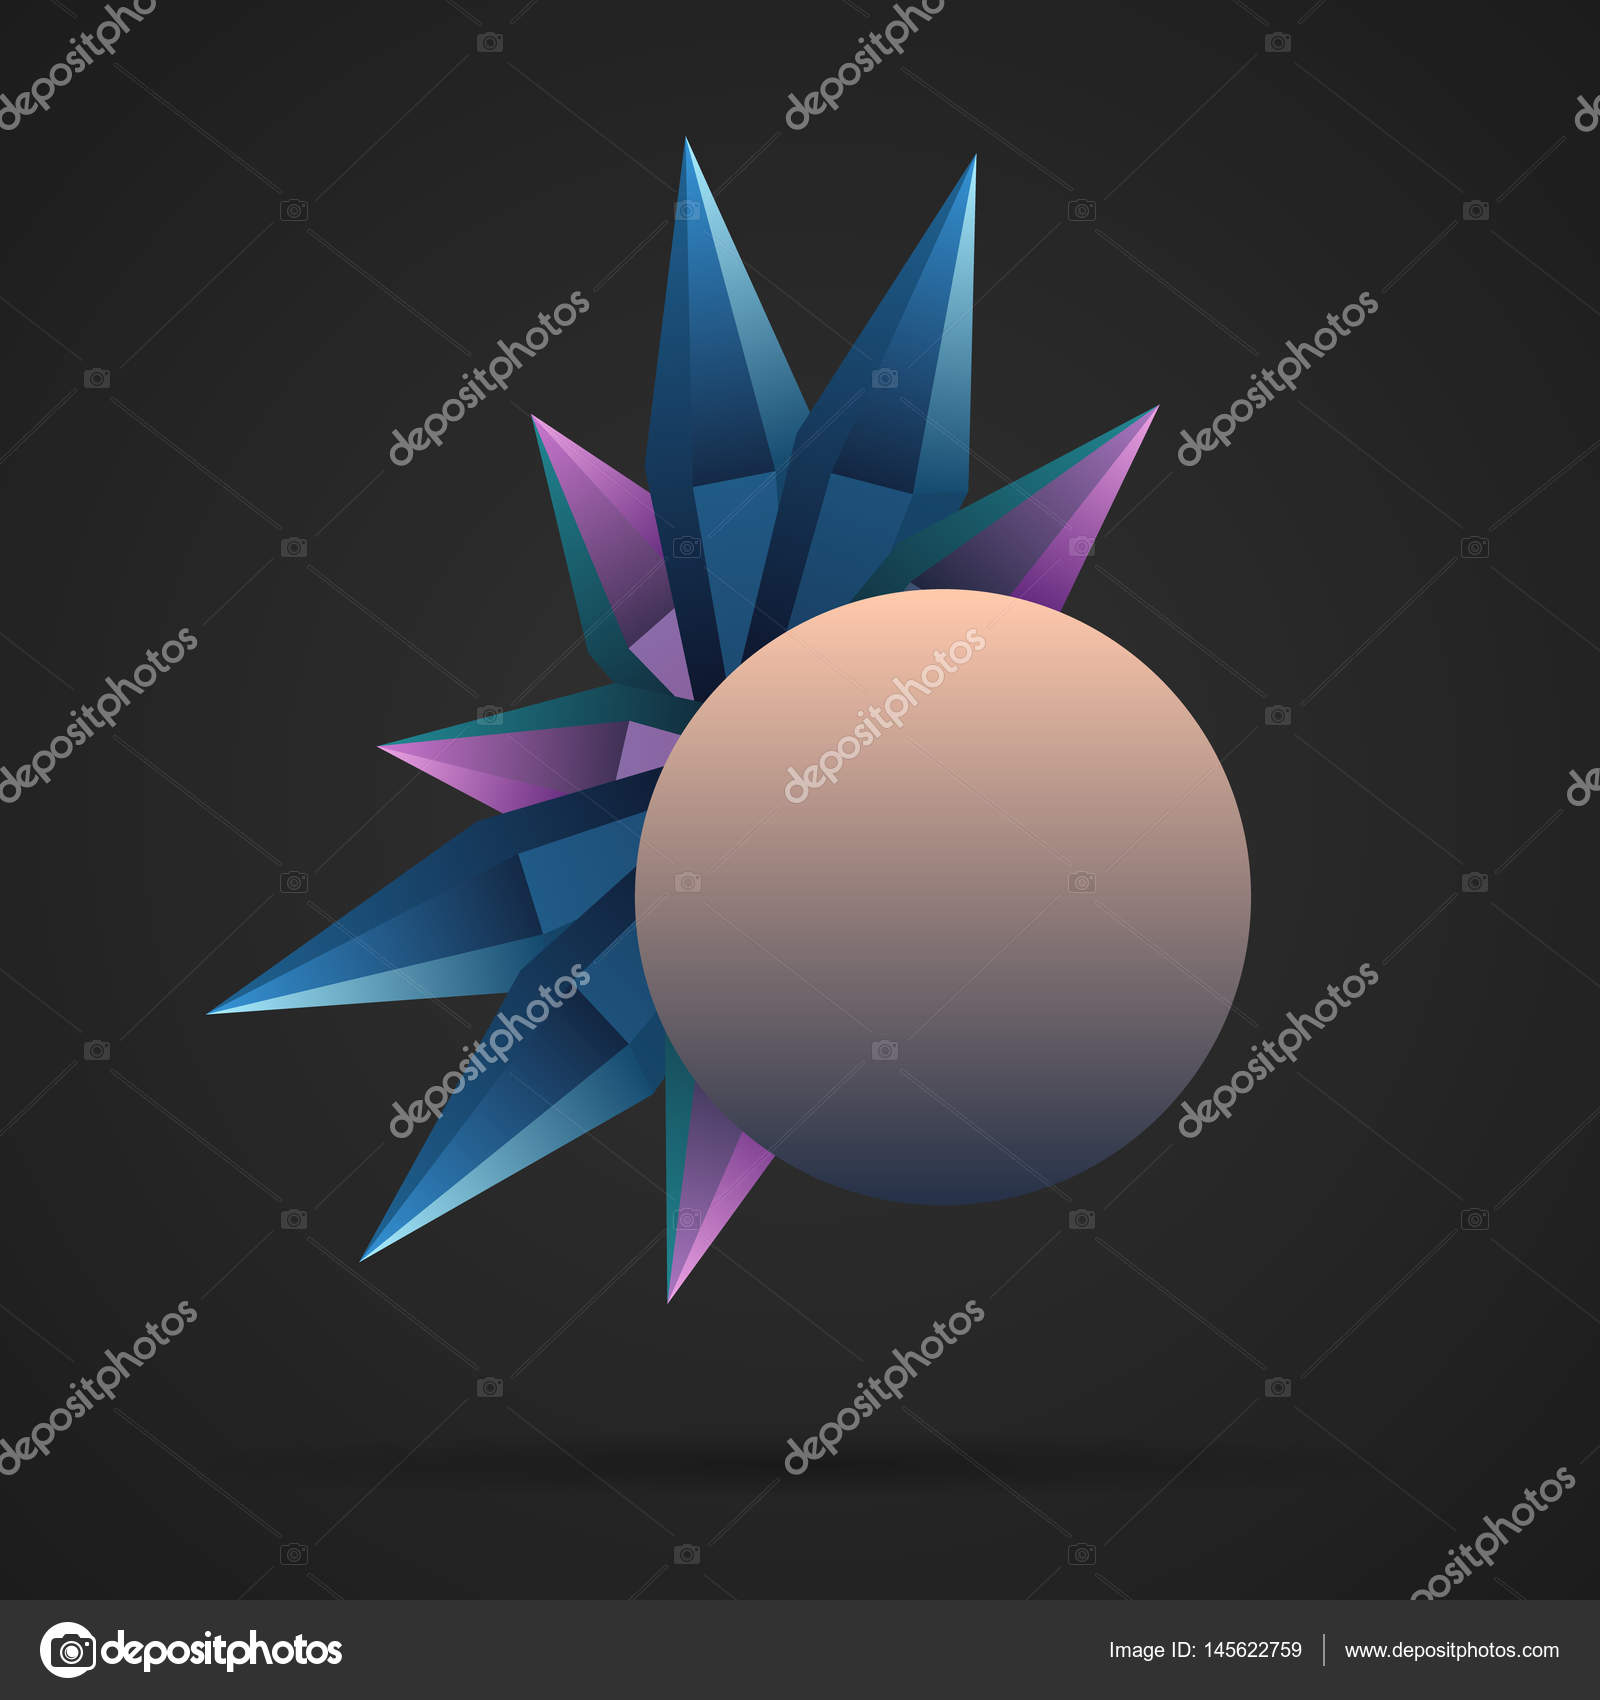 lo low diamond download logo kiss hand vector polygonal polygon painted shape preview